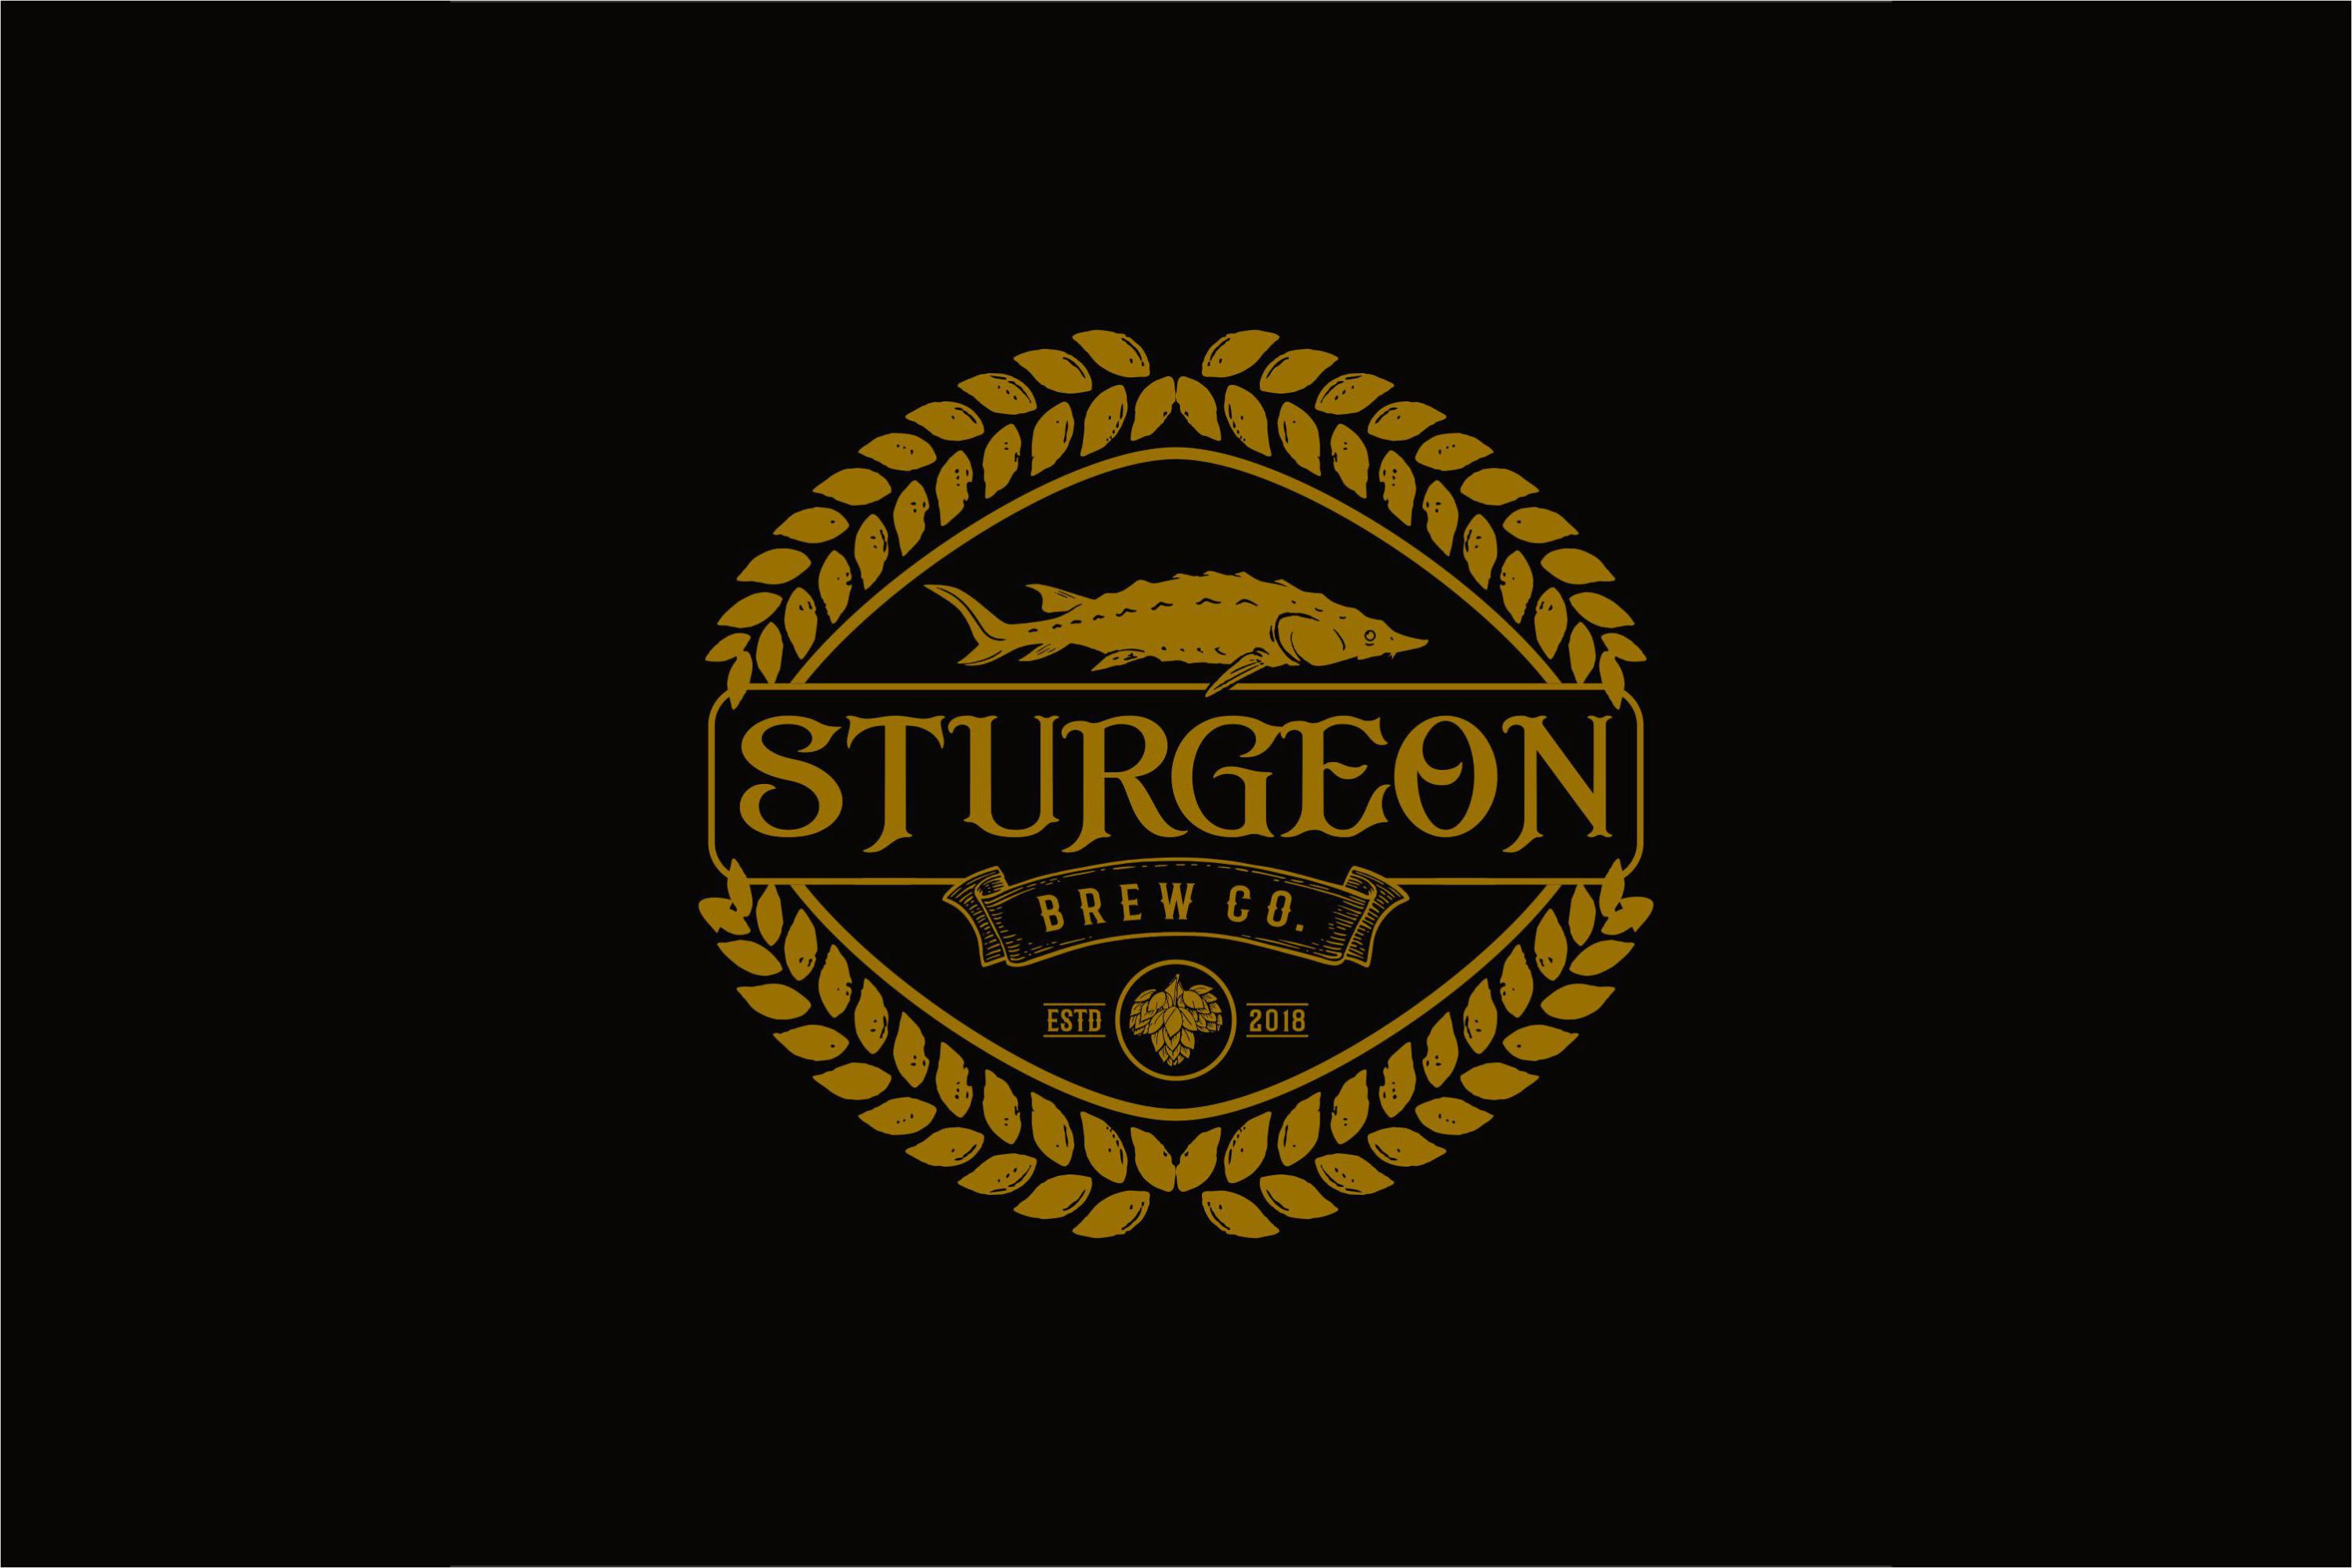 Sturgeon Vintage Logo Pack example image 5